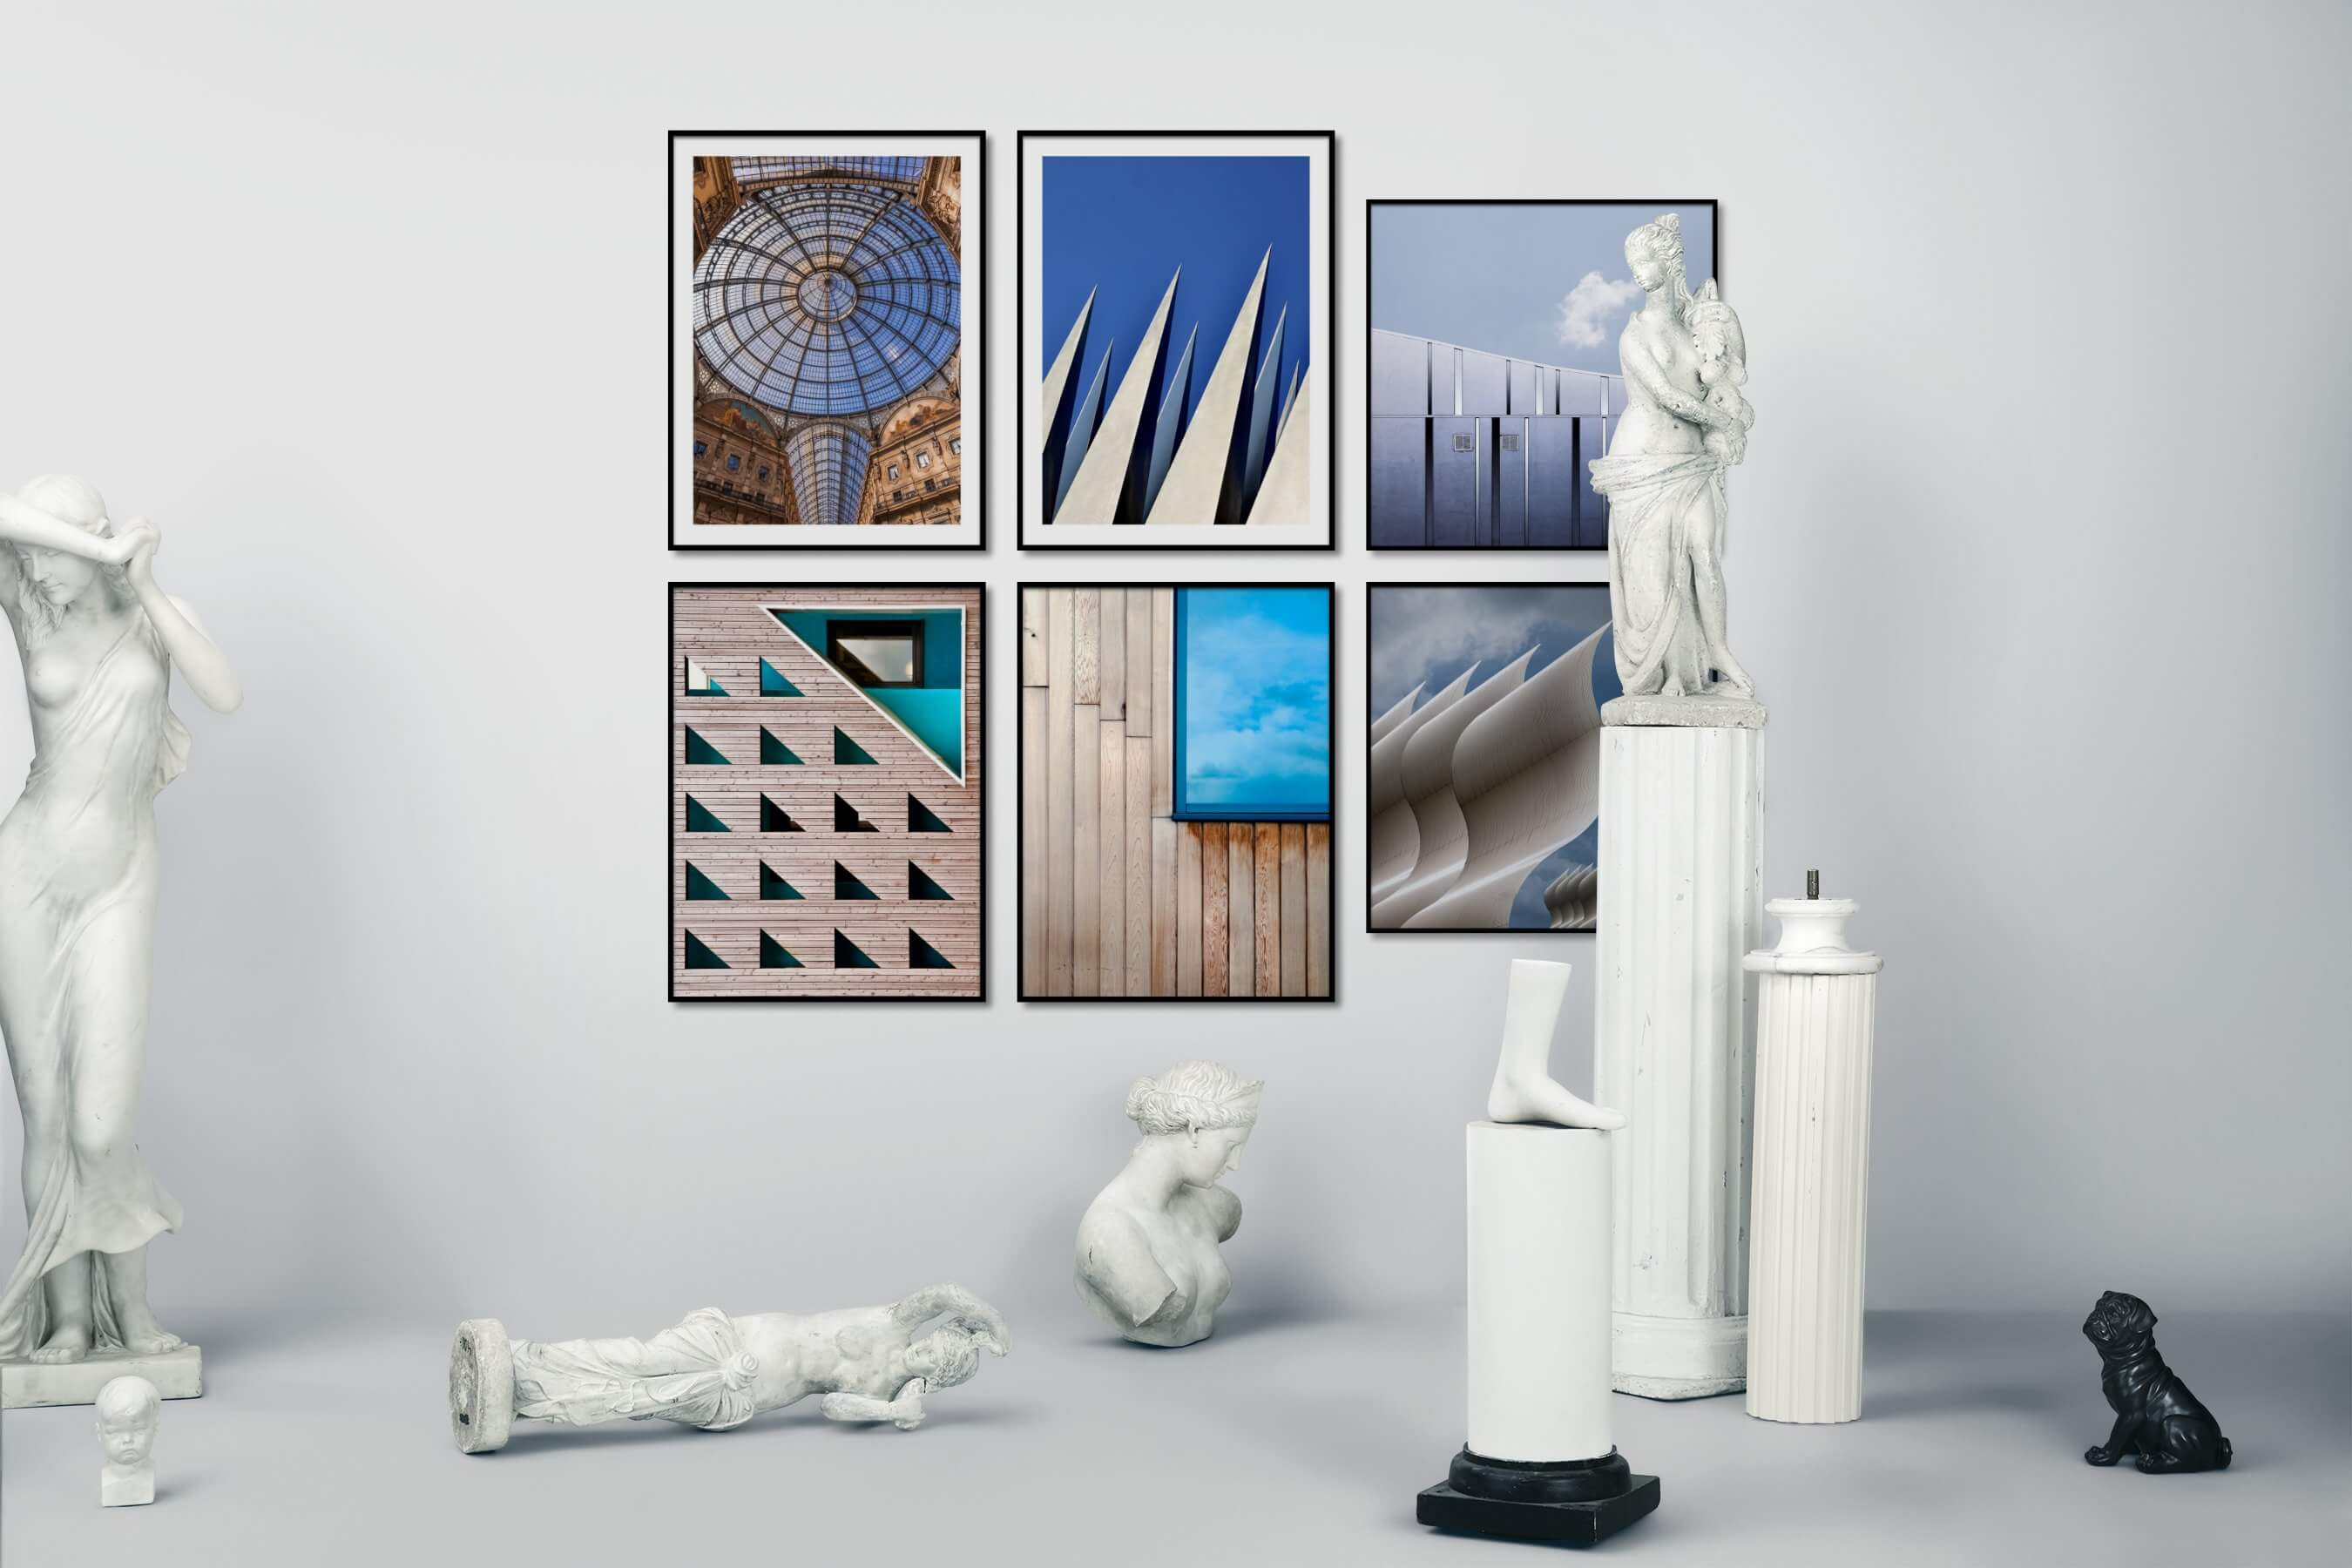 Gallery wall idea with six framed pictures arranged on a wall depicting For the Maximalist, City Life, Vintage, and For the Moderate